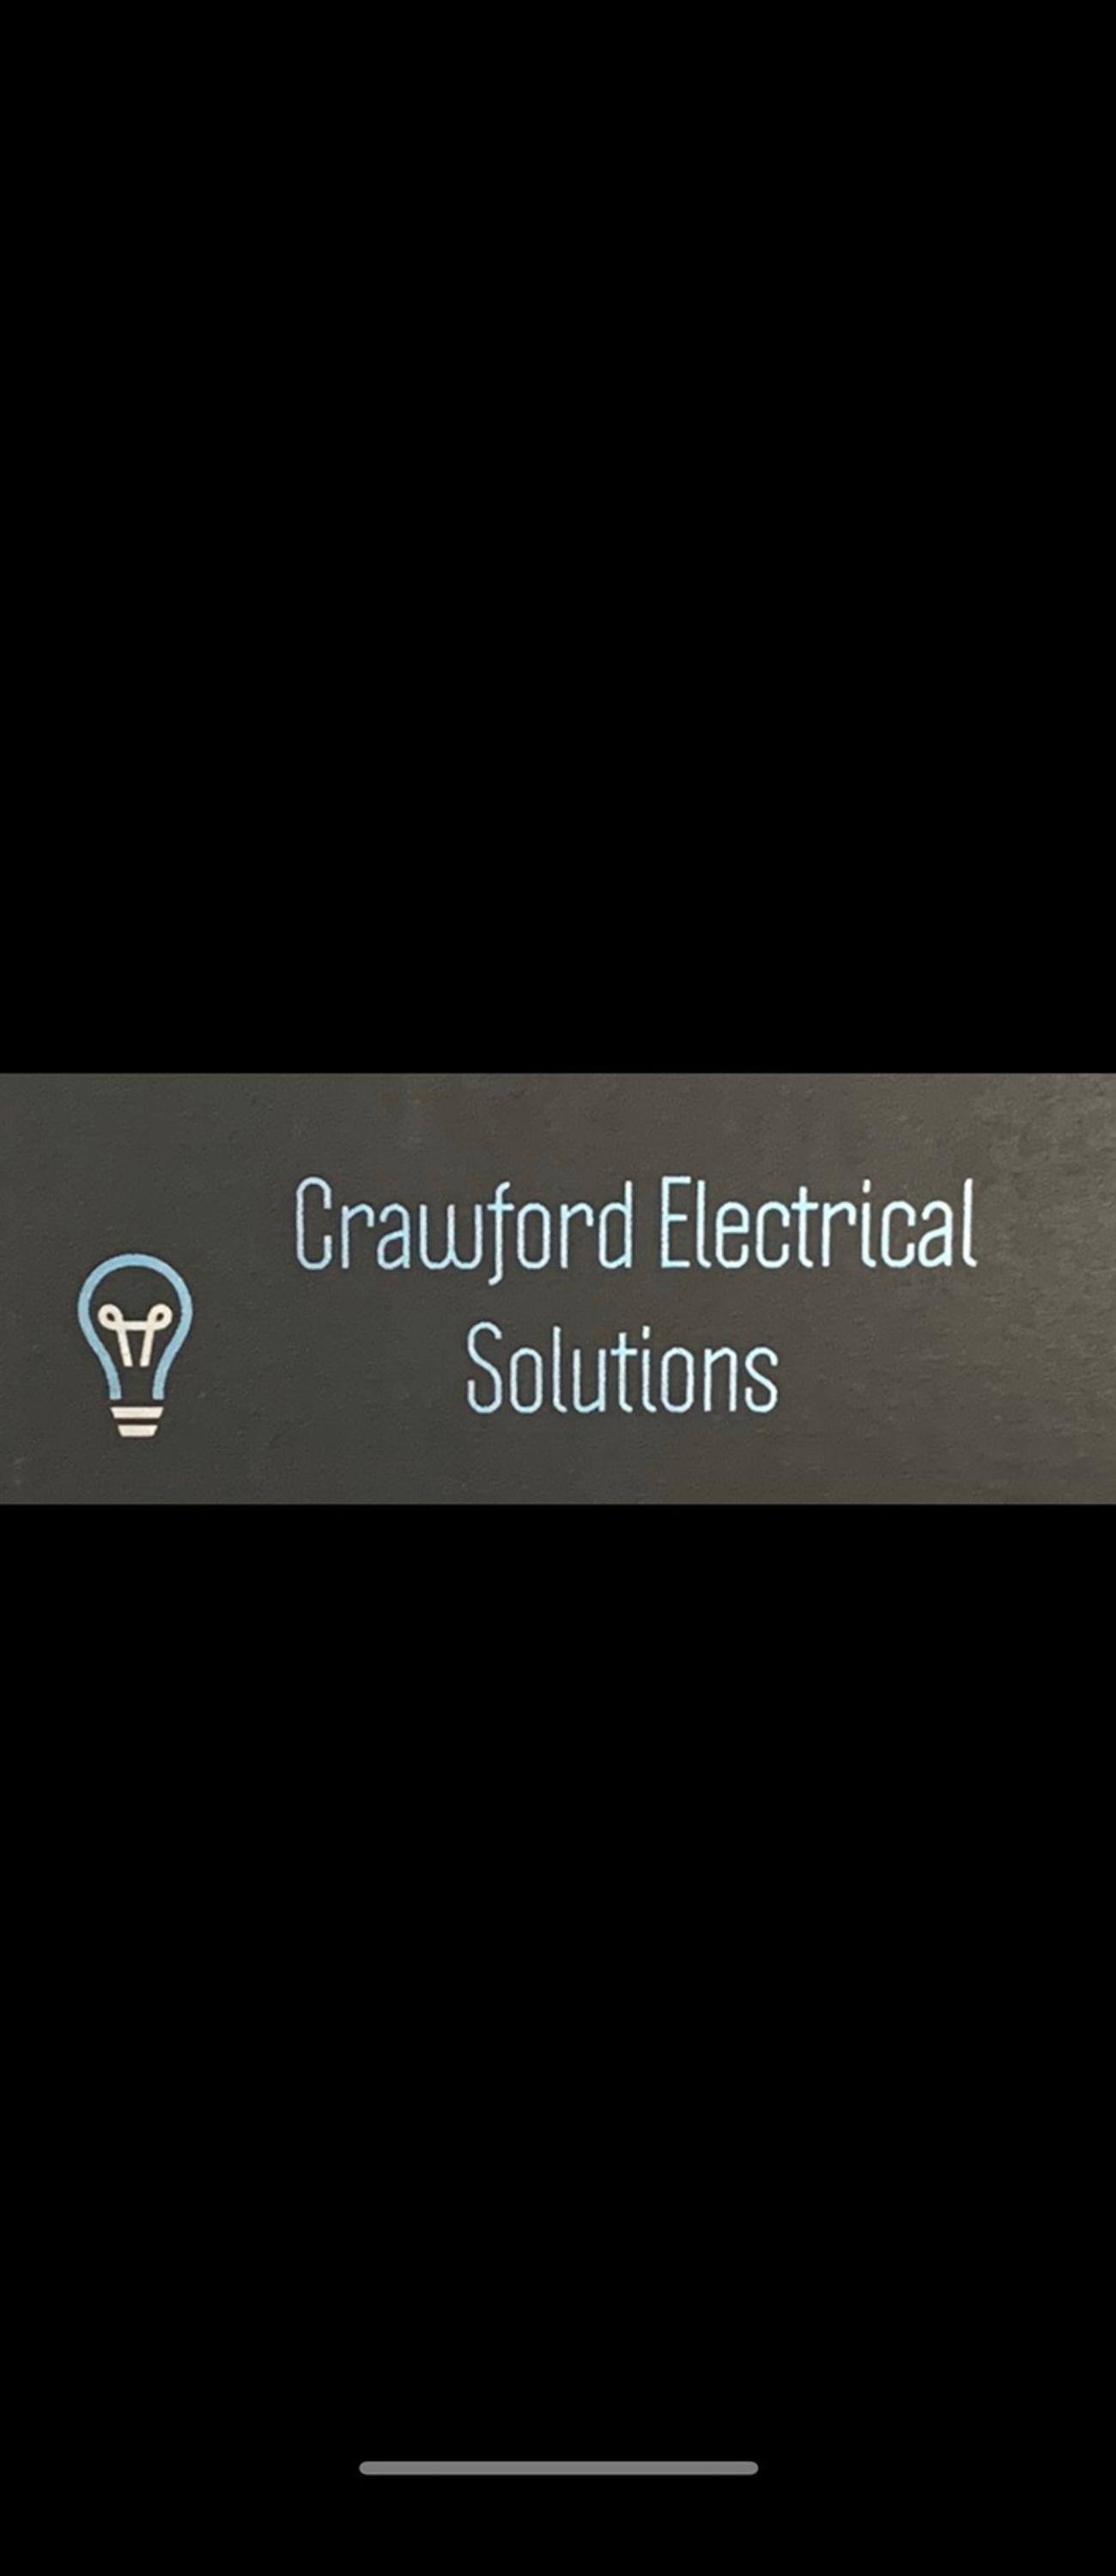 At crawford electrical solutions all of our engineers are fully qualified and experienced electricians. We undertake minor and major jobs for all your electrical needs; From lights to rewires, additions and alterations at competitive prices. We cover domestic, commercial and Industrial jobs. Contact us for a free quote!  07580011302